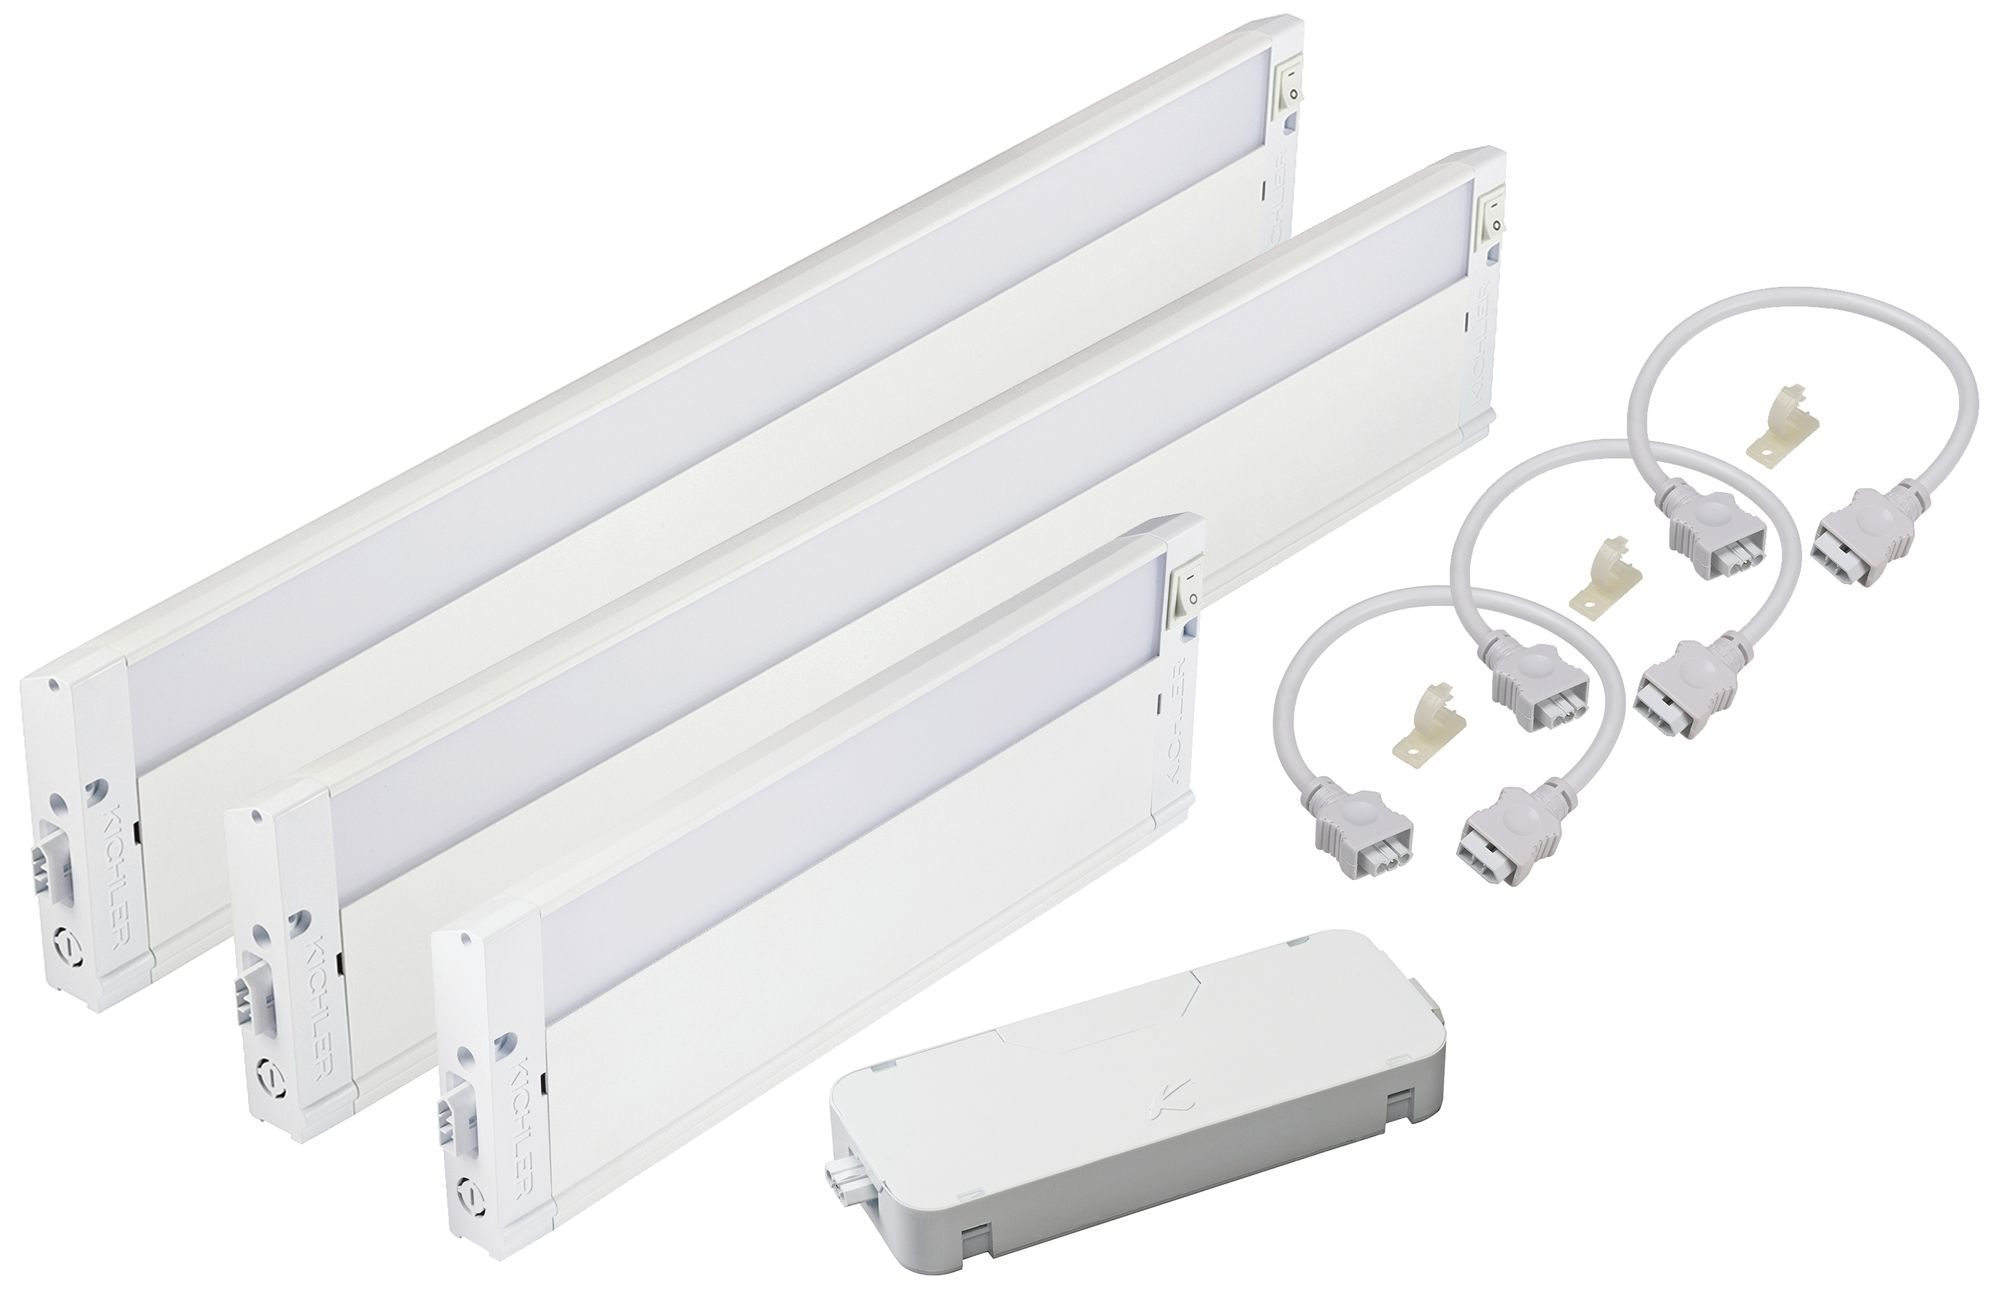 Merveilleux Kichler Under Cabinet Kit With Three LED Lights And Cable